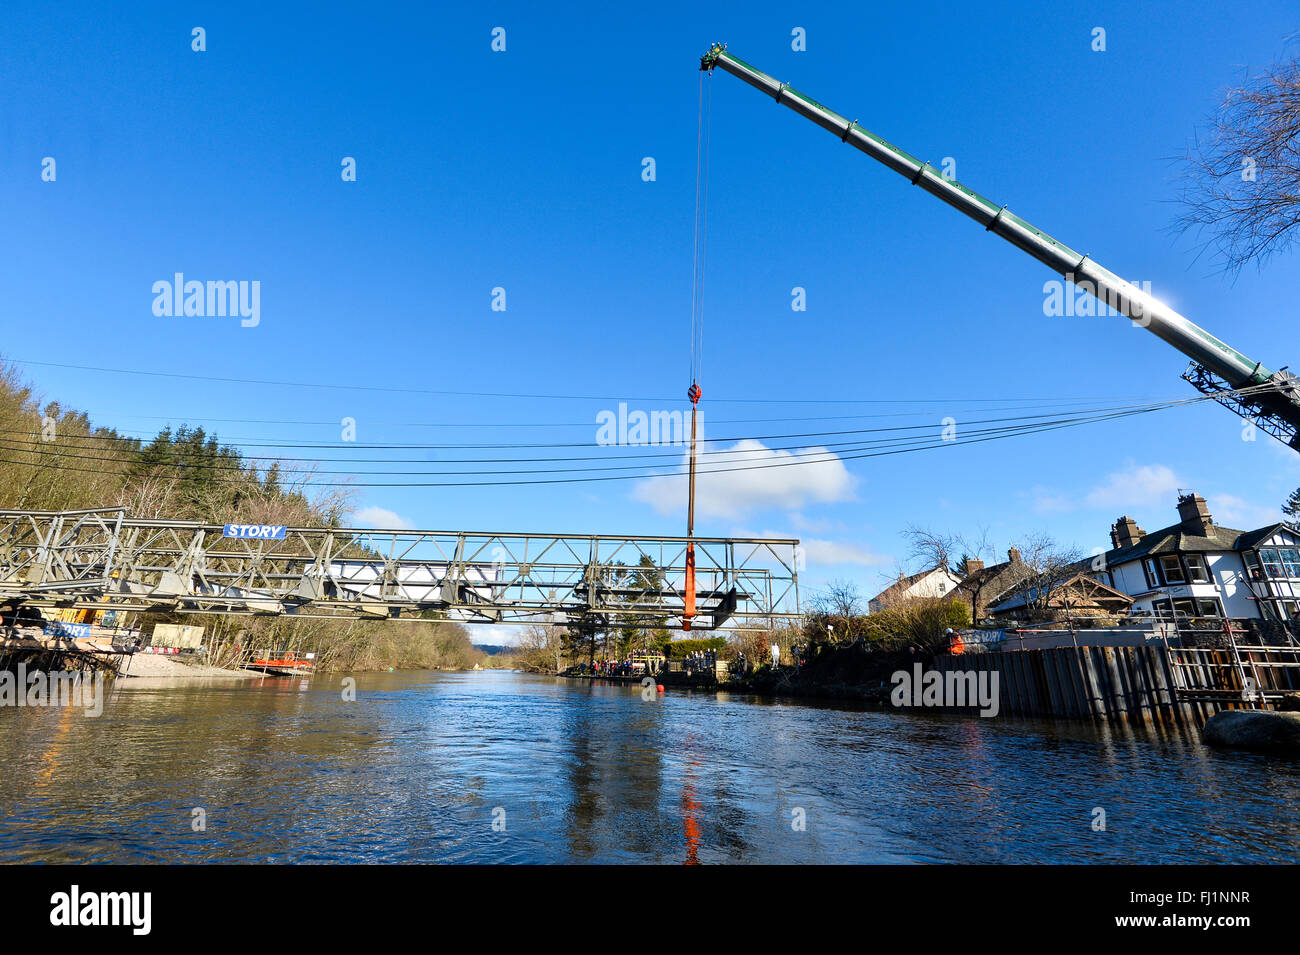 Ullswater, Cumbria, UK. 28th Feb, 2016. The temporary bridge is lifted into place across the River Eamont at Pooley - Stock Image